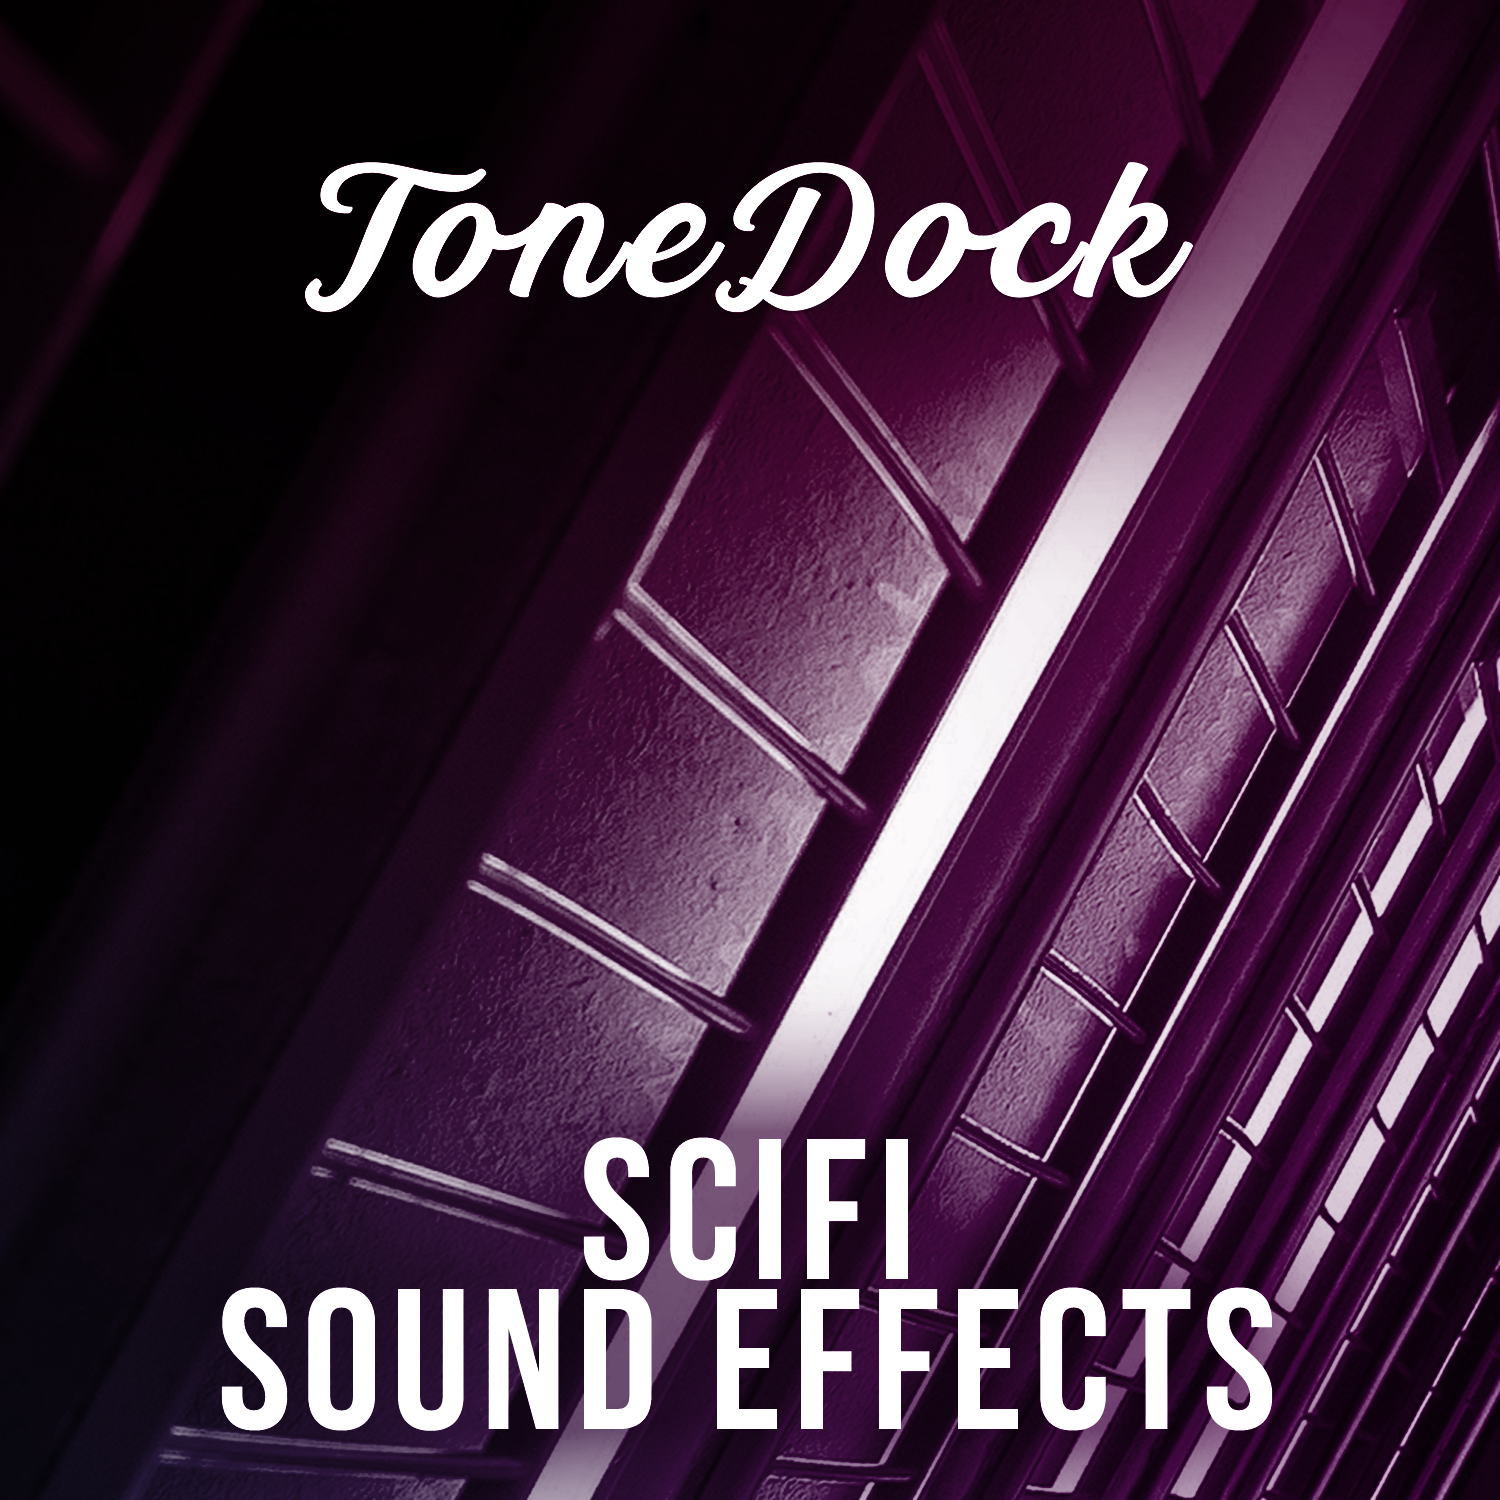 This pack of free SciFi Sound Effects contains over 150